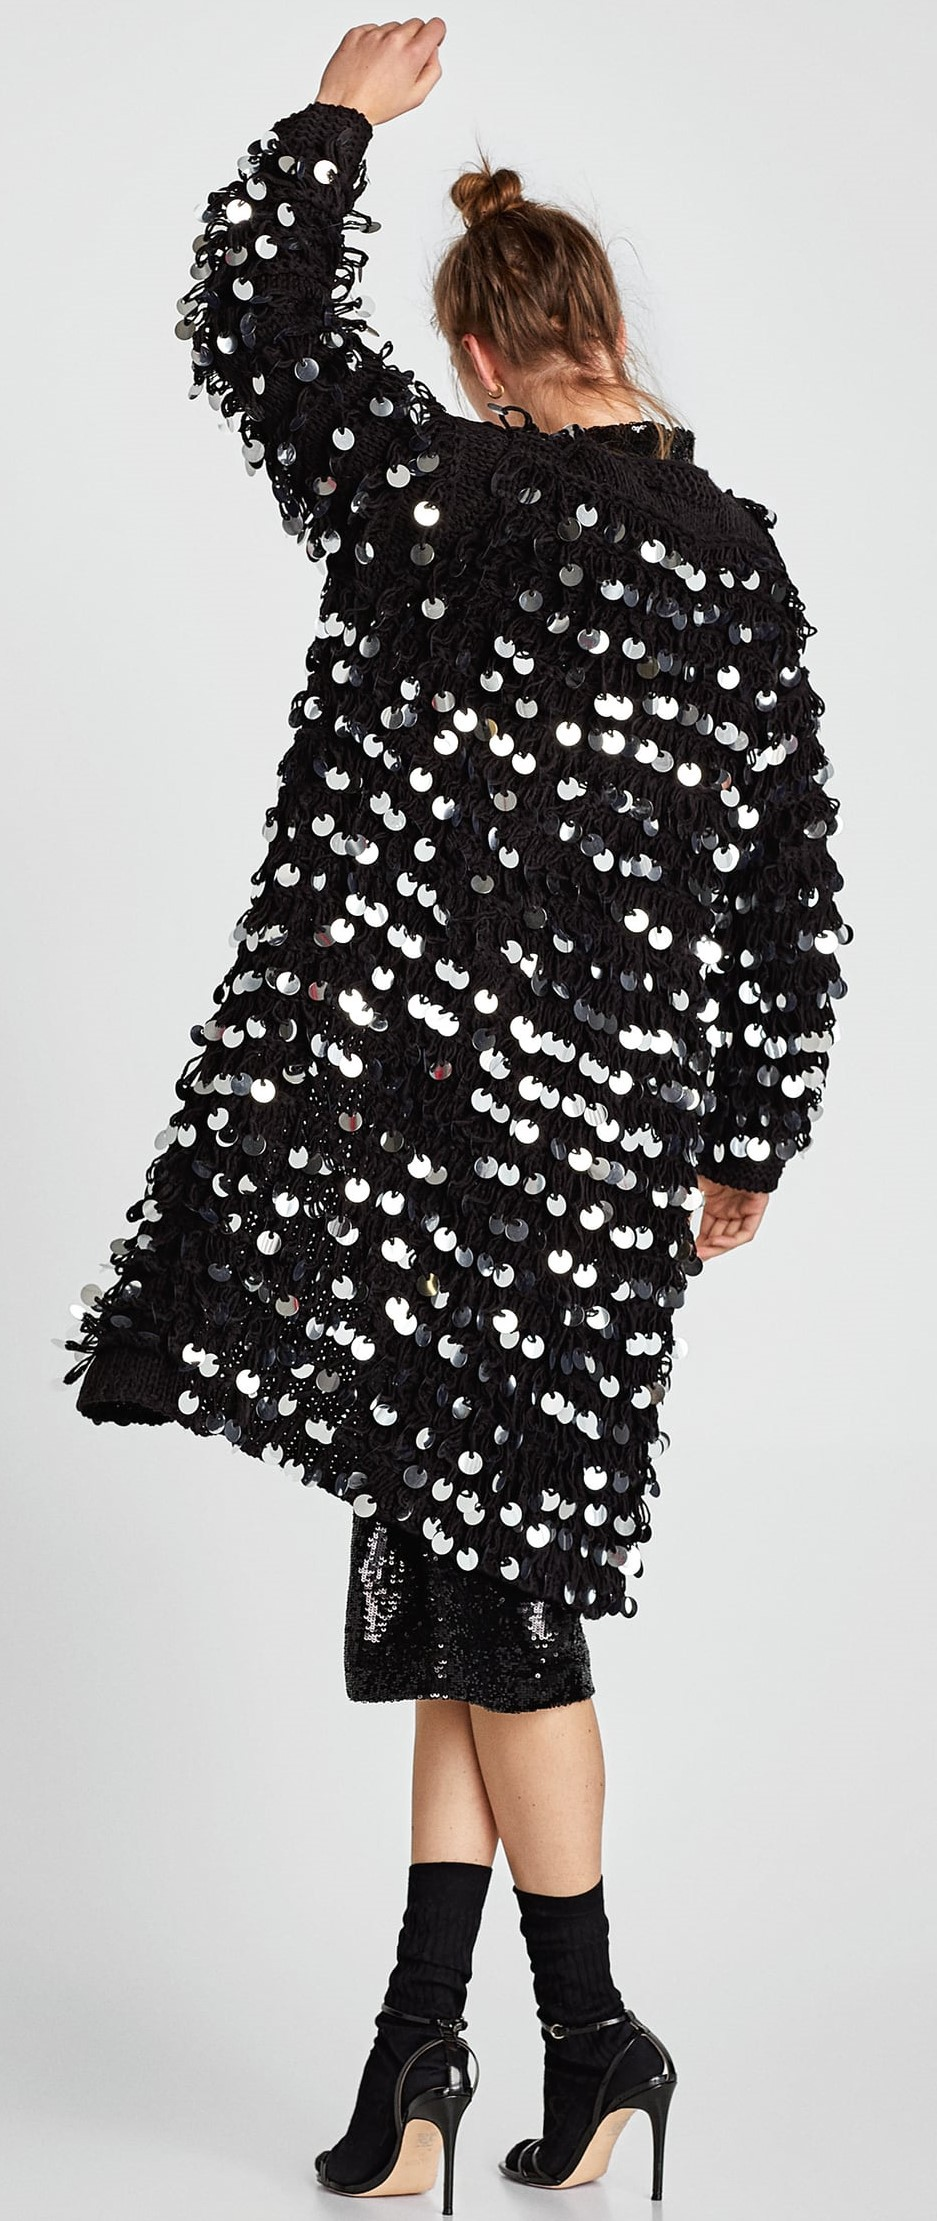 57f73384 Black Faux Leather Dress with Eyelets, $69.90 and Black Sequinned Coat,  $119: I would style this leather dress totally differently, but the dress  itself is ...